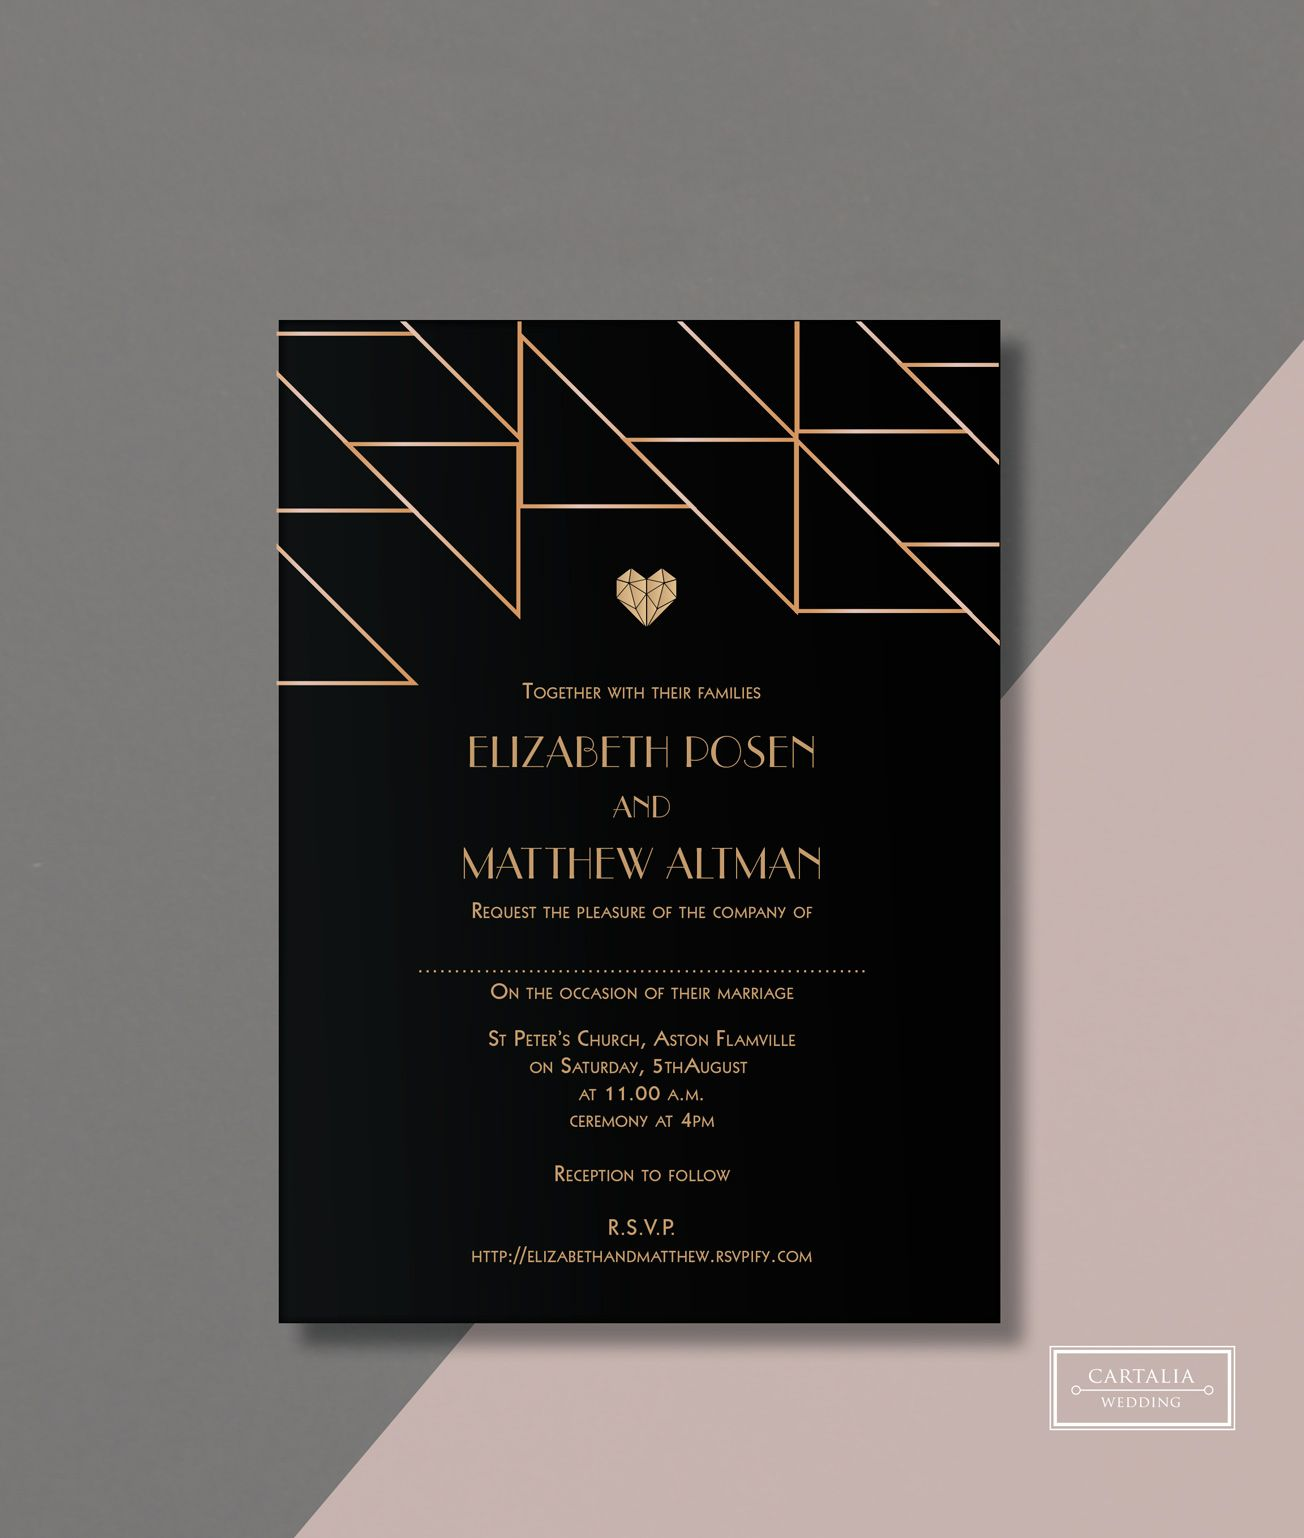 standard size wedding invitation%0A Geometric Heart Wedding Invitation Design with gold foil from Cartalia   perfect for your modern wedding